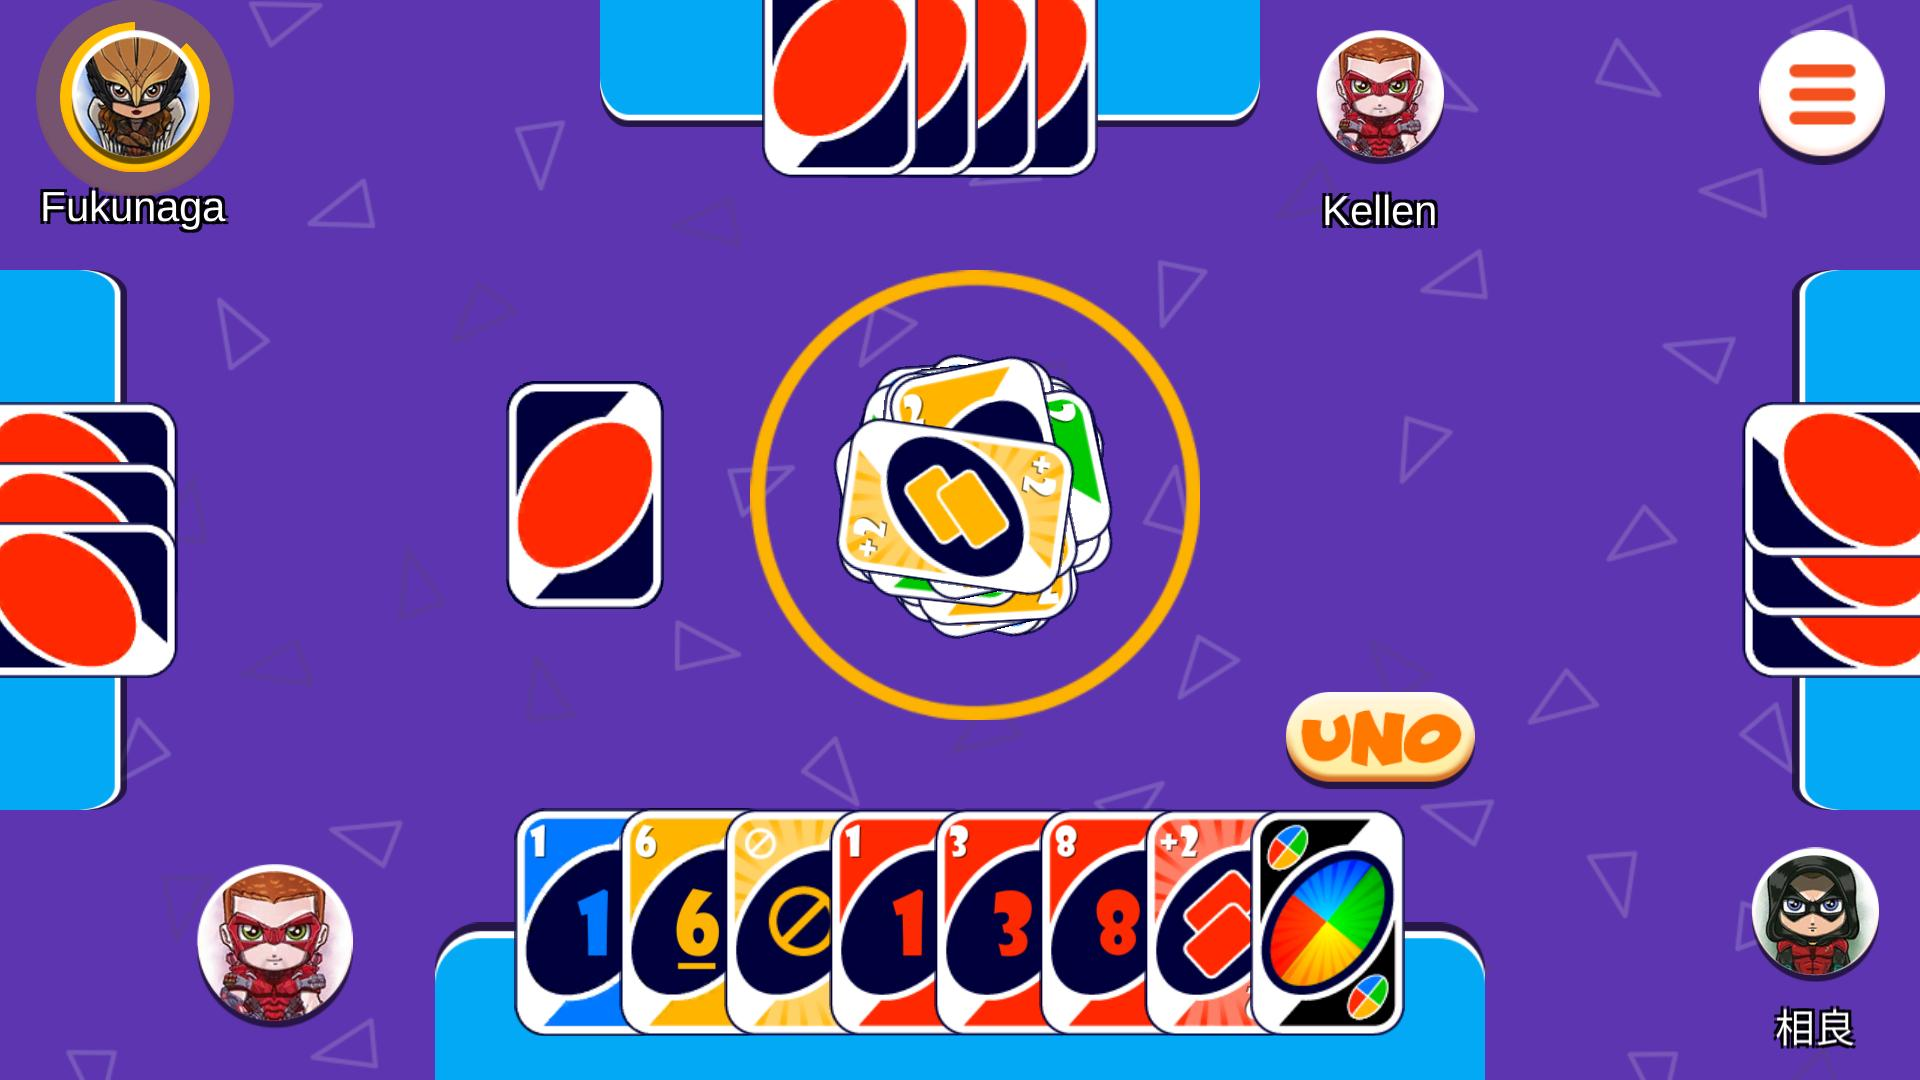 Uno Online Uno Card Game Multiplayer With Friends For Android Apk Download